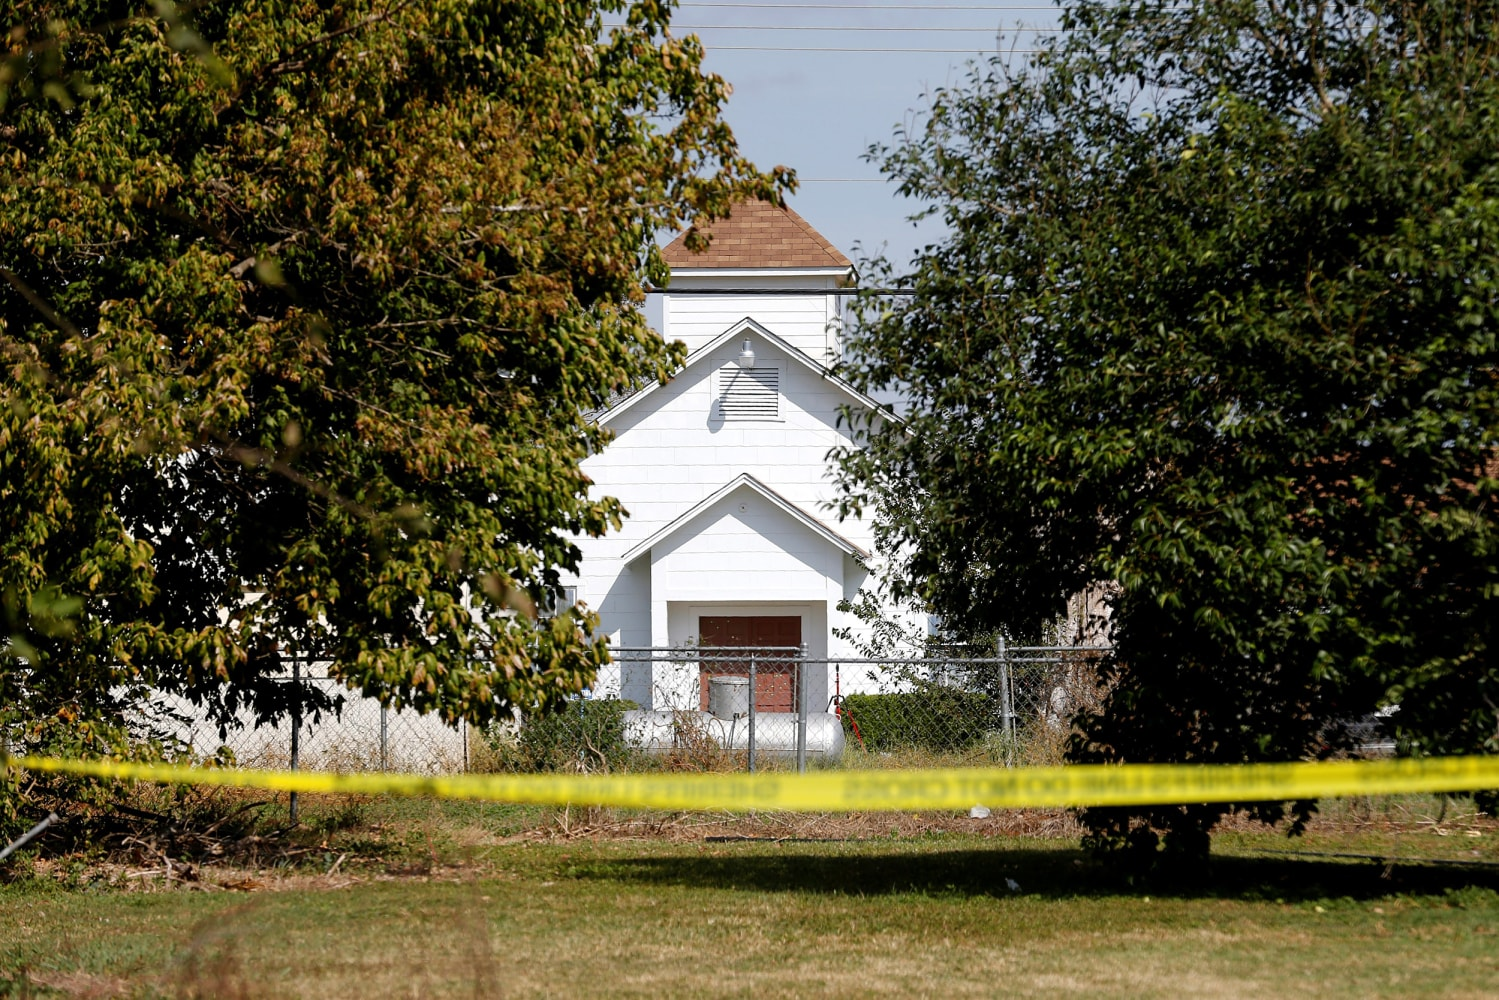 Several People Shot At Baptist Church In Sutherland Springs, Texas